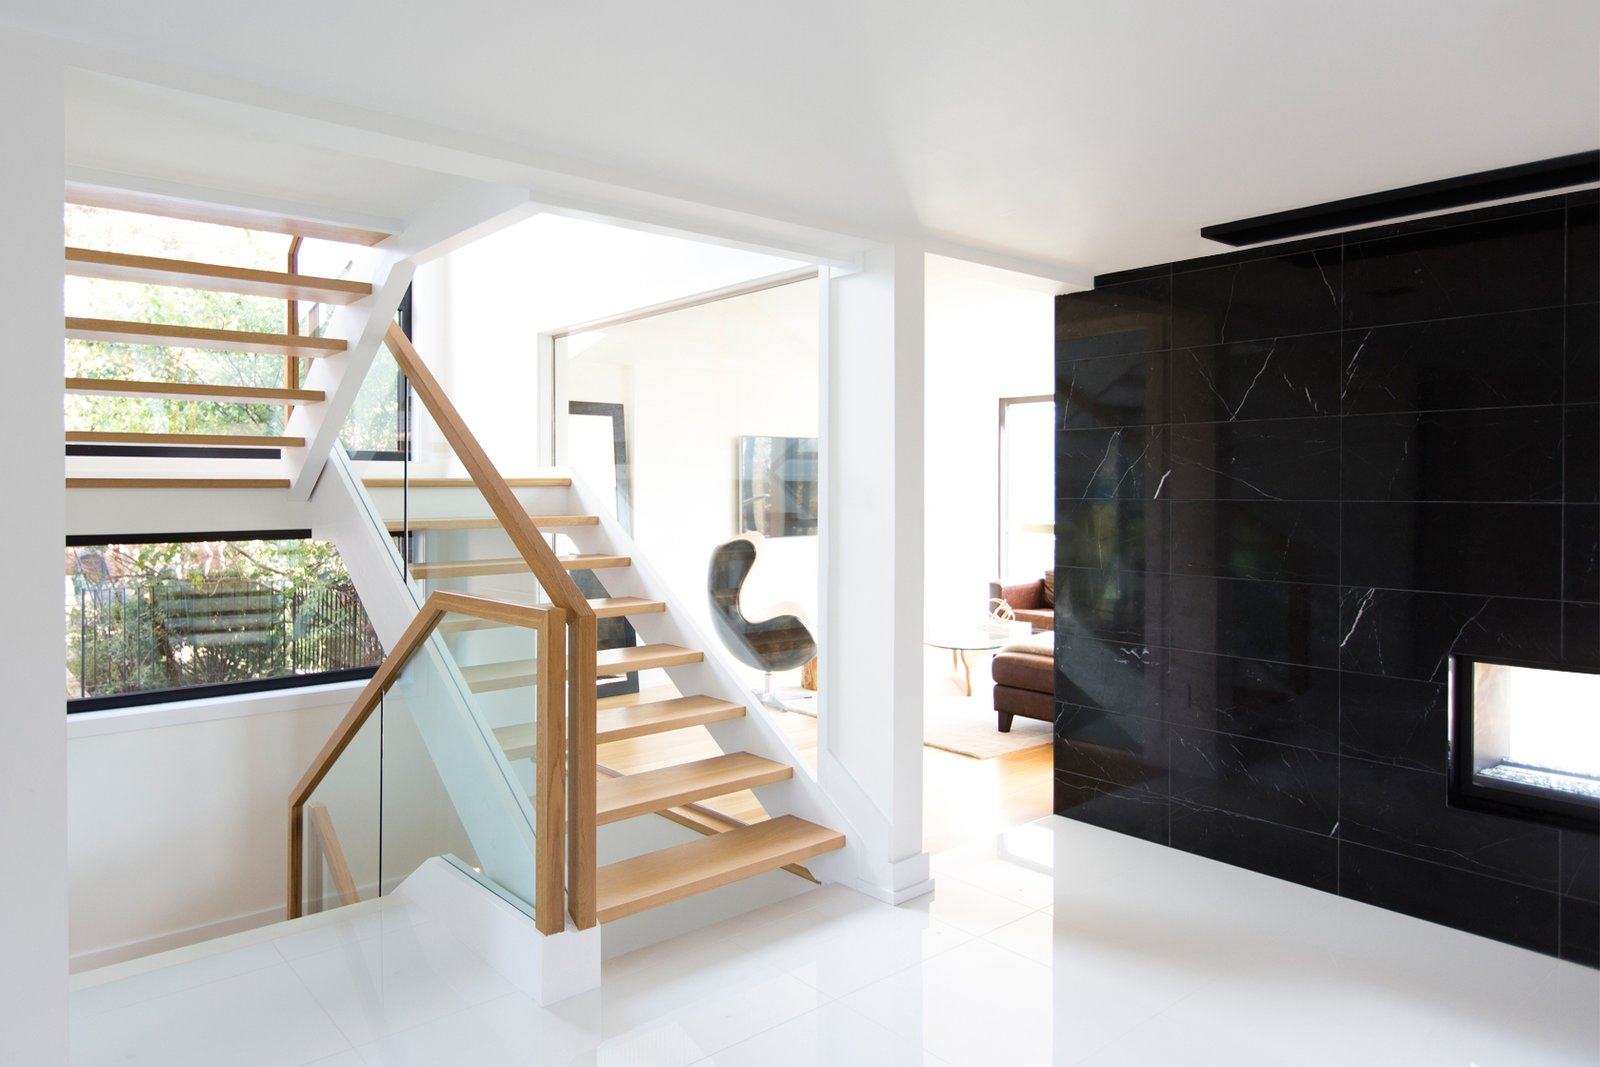 The staircase was relocated to enlarge the entrance foyer and improve the flow of space.  Ravine House by FrankFranco Architects